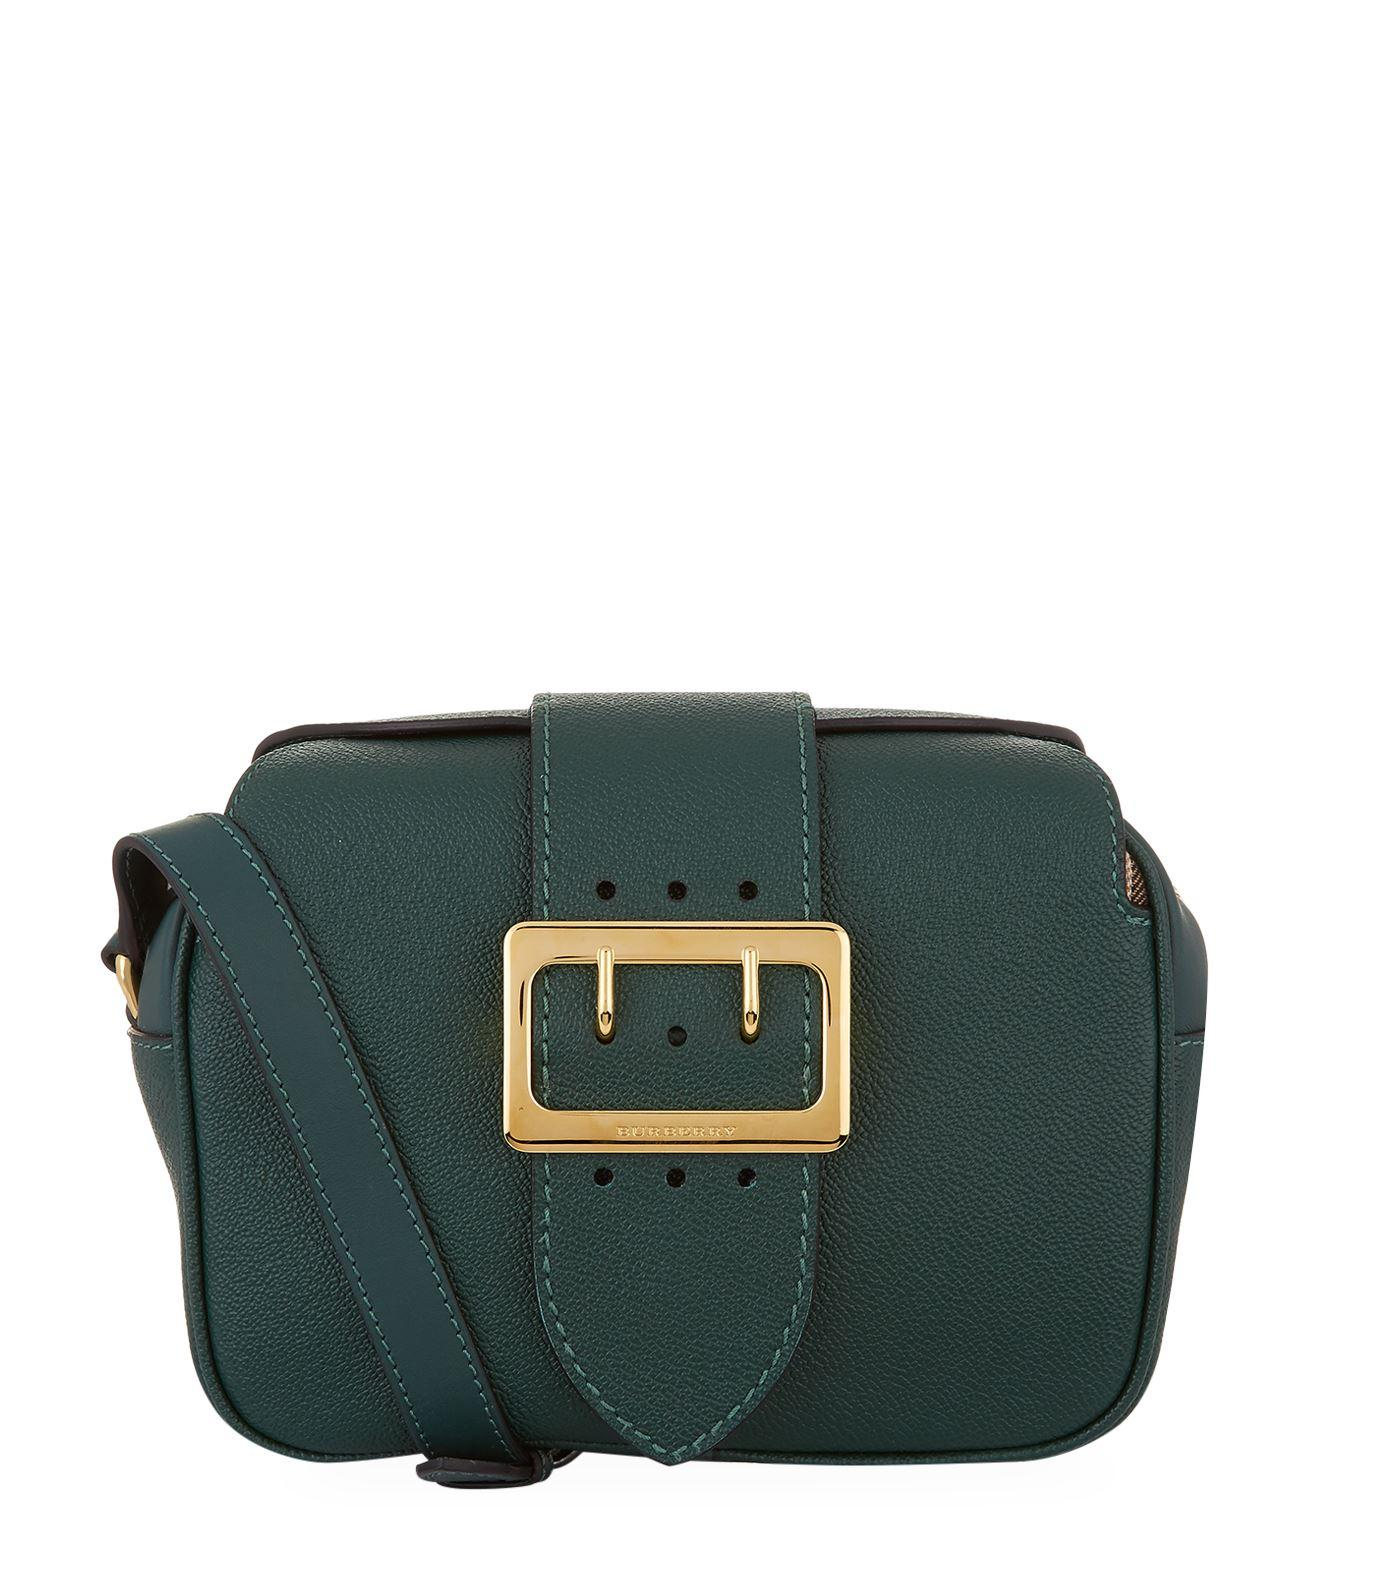 148c040bd50 Burberry Small Buckle Leather Crossbody Bag - Green | ModeSens